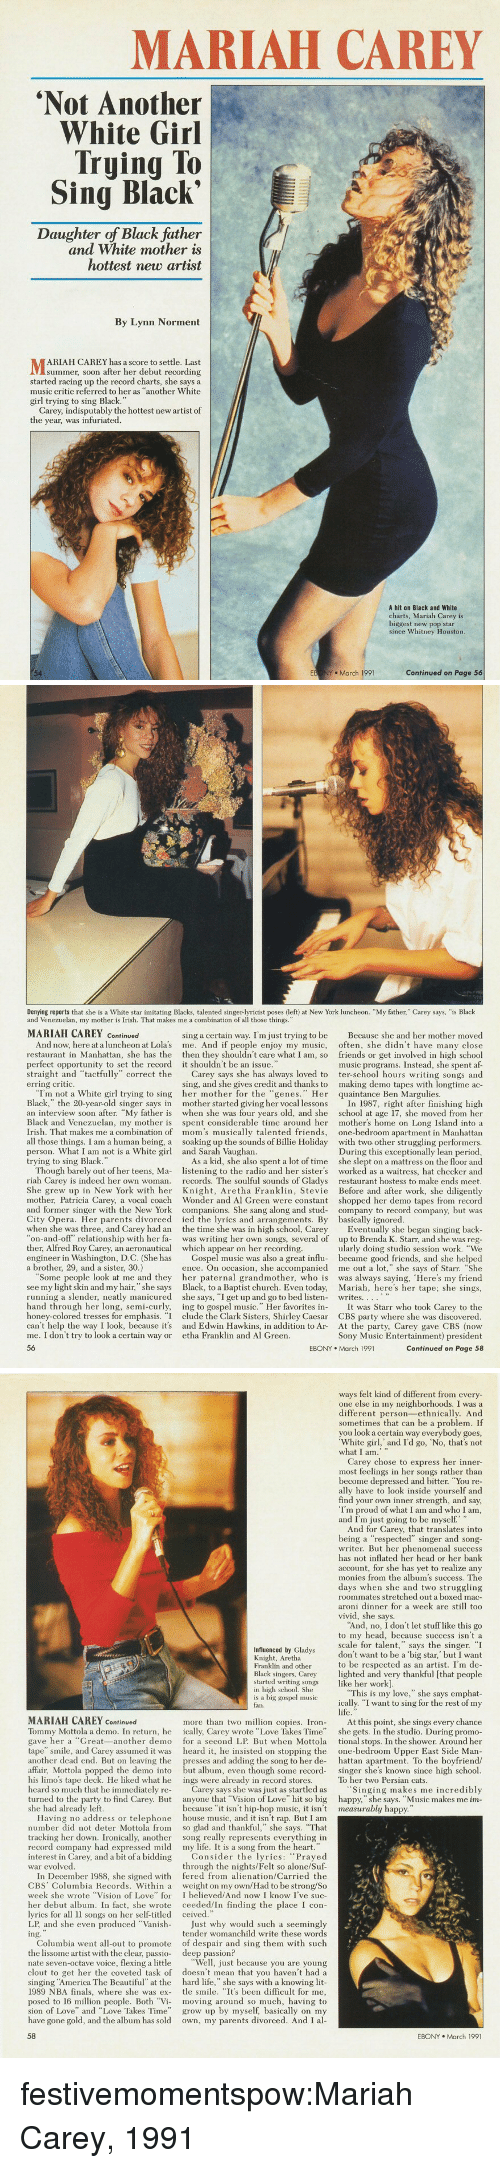 "Af, Being Alone, and America: MARIAH CAREY  Not Another  White Girl  Trying To  Sing Black'  Daughter of Black father  and White mother is  hottest new artist  By Lynn Norment  ARIAH CAREY has a score to settle. Last  summer, soon after her debut recording  started racing up the record charts, she says a  music critic referred to her as ""another White  girl trying to sing Black.""  Carey, indisputably the hottest new artist of  the year, was infuriated  A hit on Black and White  charts, Mariah Carey is  biggest new pop star  since Whitney Houston  54  EB NY March 1991  Continued on Page 56   Denying reports that she is a White star imitating Blacks, talented singer-lyricist poses (left) at New York luncheon. ""My father, Carey says, ""is Black  and Venezuelan, my mother is Irish. That makes me a combination of all those things.""  MARIAH CAREY Continued  sing a certain way. I'm just trying to be  Because she and her mother moved  And now, here at a luncheon at Lolas me. And if people enjoy my music, often, she didn't have many close  n Manhattan, she has the then they shouldn't care what I am, so friends or get involved in high school  music programs. Instead, she spent af-  straight and ""tactfully"" correct the Carey says she has always loved to ter-school hours writing songs and  ing, and she gives credit and thanks to making demo tapes with longtime ac-  perfect opportunity to set the record  it shouldn't be an issue  erring critic.  ""Im not a White girl trying to sing her mother for the ""genes. Her quaintance Ben Margulies  Black,"" the 20-year-old singer says in mother started giving her vocal lessons I 1987, right after finishing high  an interview soon after. ""My father is when she was four years old, and she school at age 17, she moved from her  Black and Venezuelan, my mother is spent considerable time around her mother's home on Long Island into a  Irish. That makes me a combination of mom's musically talented friends, one-bedroom apartment in Manhattan  all those things. I am a human being, a soaking up the sounds of Billie Holiday with two other struggling performers  During this exceptionally lean period,  As a kid, she also spent a lot of time she slept on a mattress on the floor and  Though barely out of her teens, Ma- listening to the radio and her sister's worked as a waitress, hat checker and  riah Carey is indeed her own woman records. The soulful sounds of Gladys restaurant hostess to make ends meet  She grew up in New York with her Knight, Aretha Franklin, Stevie Before and after work, she diligently  mother, Patricia Carey, a vocal coach Wonder and Al Green were constant shopped her demo tapes from record  and former singer with the New York companions. She sang along and stud- company to record company, but was  person. What I am not is a White girl  trying to sing Black.  and Sarah Vaughan  City Opera. Her parents divorced ed the lyrics and arrangements. By basically ignored  when she was three, and Carey had an the time she was in high school, Carey  ther, Alfred Roy Carey, an aeronautica which appear on her recordin  a brother, 29, and a sister, 30.)  back  on-and-off"" relationship with her fa was writing her own songs, several of up to Brenda K. Starr, and she was reg  ularly doing studio session work. ""We  engineer in Washington, D.C. (She has Gospel music was also a great influ became good friends, and she helped  ence. On occasion, she accompanied me out a lot,"" she says of Starr. ""She  Some people look at me and they her paternal grandmother, who is was always saying, Here's my friend  see my light skin and my hair,"" she says Black, to a Baptist church. Even today, Mariah, here's her tape; she sings  Eventually she began  running a slender, neatly manicured  she says, ""I get up and go to bed listen-  writes..。。..  hand through her long, semi-curly, ing to gospel music."" Her favorites i It was Starr who took Carey to the  honey-colored tresses for emphasis. ""I clude the Clark Sisters, Shirley Caesar CBS party where she was discovered  can't help the way I look, because it's and Edwin Hawkins, in addition to Ar  me. I don't try to look a certain way or etha Franklin and Al Green  56  At t  Sony Music Entertainment) president  Continued on Page 58  EBONY March 1991   ways felt kind of different from every  one else in my neighborhoods. I was a  different person-ethnically. And  sometimes that can be a problem. If  you look a certain way everybody goes  White girl, and I'd go, No, that's not  Carey chose to express her inner-  most feelings in her songs rather than  become depressed and bitter. You re  ally have to look inside yourself and  find your own inner strength, and say,  Im proud of what I am and who I am  and I'm just going to be myself  And for Carey, that translates into  being a ""respected"" singer and song  writer. But her phenomenal success  has not inflated her head or her bank  account, for she has yet to realize any  monies from the album's success. The  days when she and two struggling  roommates stretched out a boxed mac  aroni dinner for a week are still too  Vivid, she says  And, no, I don't let stuff like this go  to my head, because success isn't a  scale for talent,"" says the singer. I  don't want to be a big star,' but I want  to be respected as an artist. I'm de-  Black singers, Carey lighted and very thankful [that people  Influenced by Gladys  Knight, Aretha  Franklin and other  started writing songs ike her work]  in high school. She  is a big gospel musio  fan.  ""This is my love,"" she says emphat  ically. ""I want to sing for the rest of my  MARIAH CAREY Continued  more than two million copies. In At this point, she sings every chance  Tommy Mottola a demo. In return, he ically, Carey wrote ""Love Takes Time"" she gets. In the studio. During promo  gave her a Great-another demo for a second LP. But when Mottola tional stops. In the shower. Around her  tape"" smile, and Carey assumed it was  another dead end. But on leaving the  heard it, he insisted on stop  g the one-bedroom Upper East Side Marn  hattan apartment. To the boyfriend/  affair, Mottola popped the demo into but album, even though some record singer she's known since high school  presses and adding the song to her de-  his limo's tape deck. He liked what he ings were already in record stores  heard so much that he immediately re-  To her two Persian cats  Carey says she was just as startled as  Singing makes me incredibly  turned to the party to find Carey. But anyone that Vision of Love"" hit so big happy,"" she says. ""Music makes me im  she had already left  because ""it isn't hip-hop music, it isn't measurably h  Having no address or telephone house music, and it isn't rap. But I am  number did not deter Mottola from so glad and thankful,"" she says. That  tracking her down. Ironically, another song really represents everything in  record company had expressed mild  interest in Carey, and a bit of a biddii  war evolved  my life. It is a song from the heart.  ing  Consider the lyrics: ""Prayed  through the nights/Felt so alone/Suf  In December 1988, she signed with fered from alienation/Carried the  CBS Columbia Records. Within a weight on my own/Had to be strong/So  week she wrote Vision of Love"" for I believed/And now I know I've suc-  her debut album. In fact, she wrote ceeded/In finding the place I con-  lyrics for all l songs on her self-titled ceived  LP, and she even produced Vanish-  the lissome artist with the clear, passio-  inging ""America The Beautiful"" at the  Just why would such a seemingly  tender womanchild write these words  Columbia went all-out to promote of despair and sing them with suclh  deep passion?  nate seven-octave voice, flexing a little ""Well, just because you are young  clout to get her the coveted task of doesn't mean that you haven't had a  hard life,"" she says with a knowing lit  1989 NBA finals, where she was ex- tle smile. ""It's been difficult for me,  posed to 16 million people. Both ""Vi moving around so much, having to  sion of Love"" and ""Love Takes Time grow up by myself, basically on my  have gone gold, and the album has sold own, my parents divorced. And I al  EBONY March 1991 festivemomentspow:Mariah Carey, 1991"